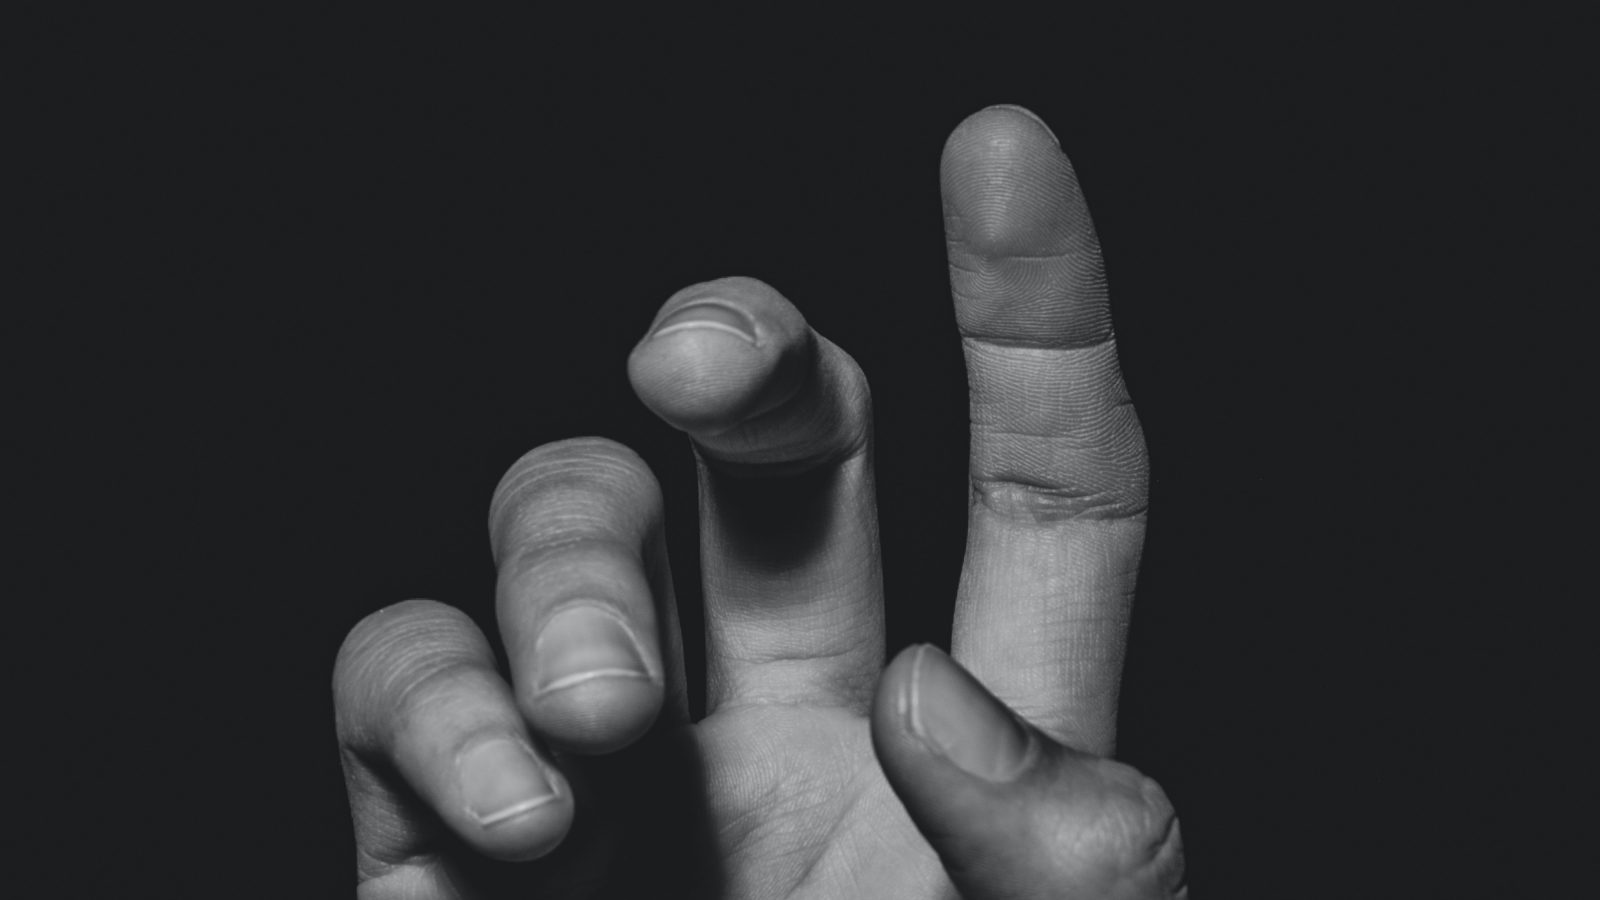 a finger that looks like it hurts